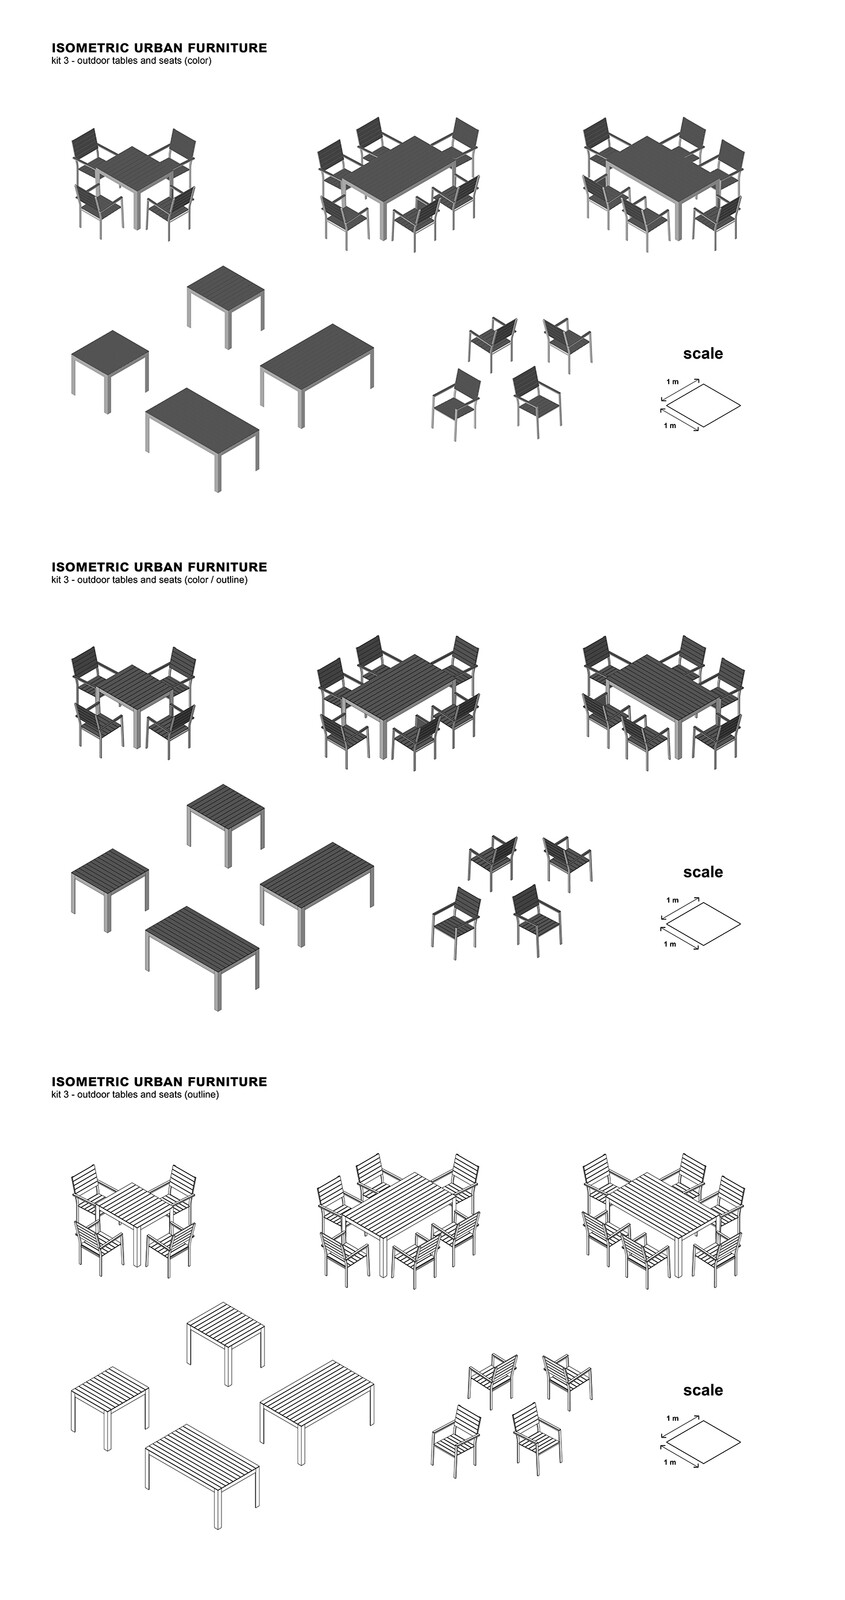 kit 3 - outdoor tables and seats